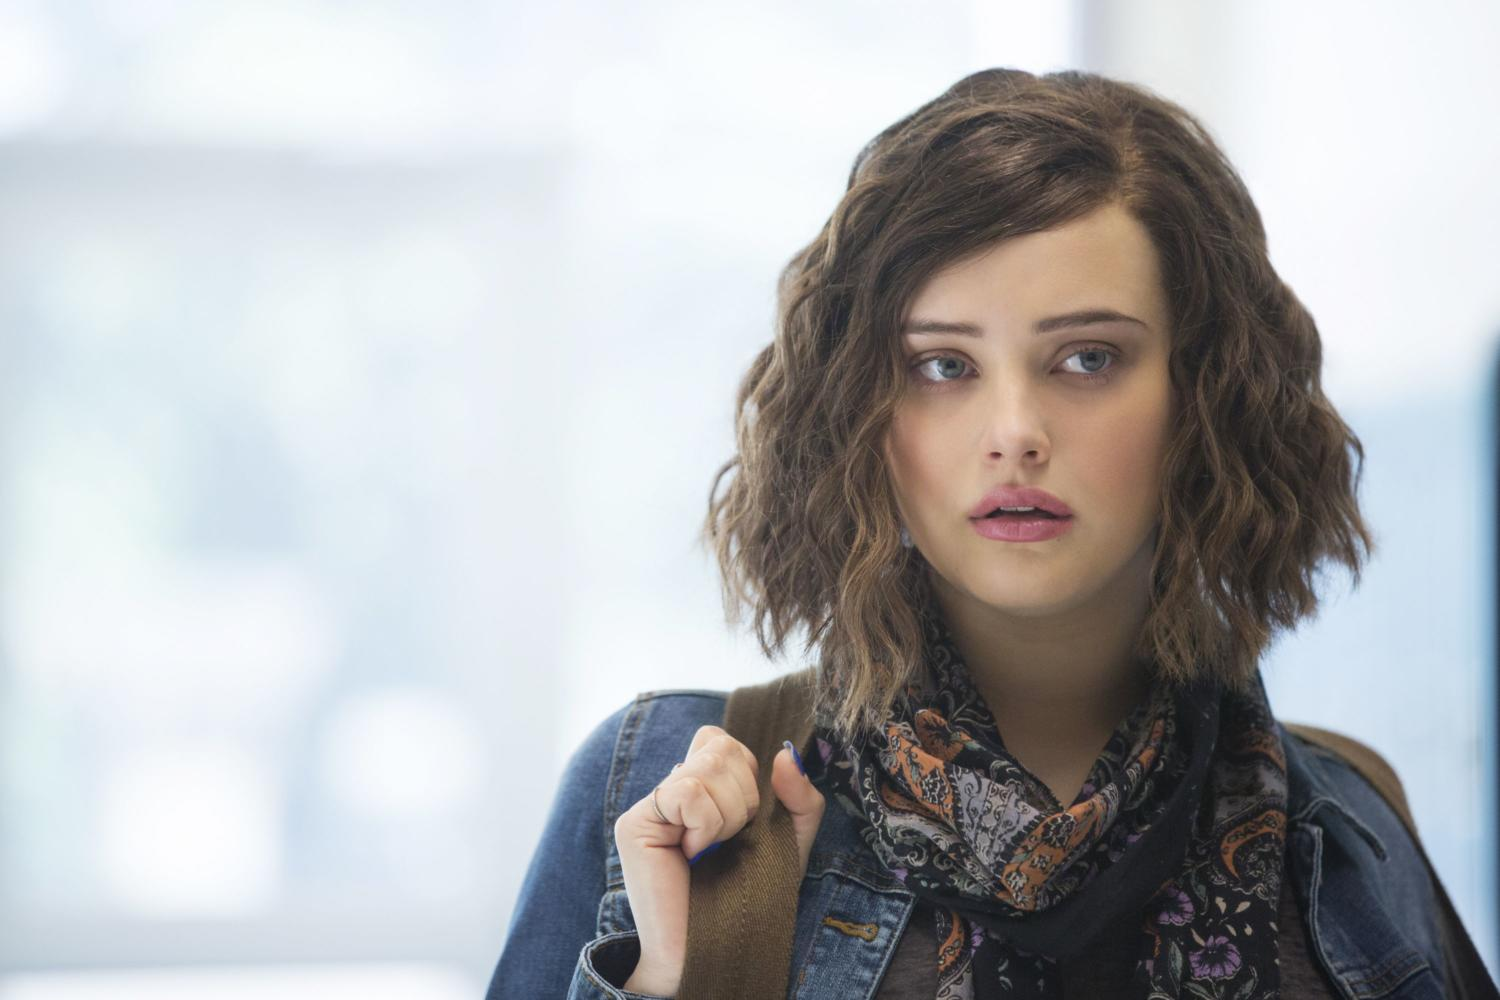 13 Reasons Why You Should Watch the Controversial Netflix Series